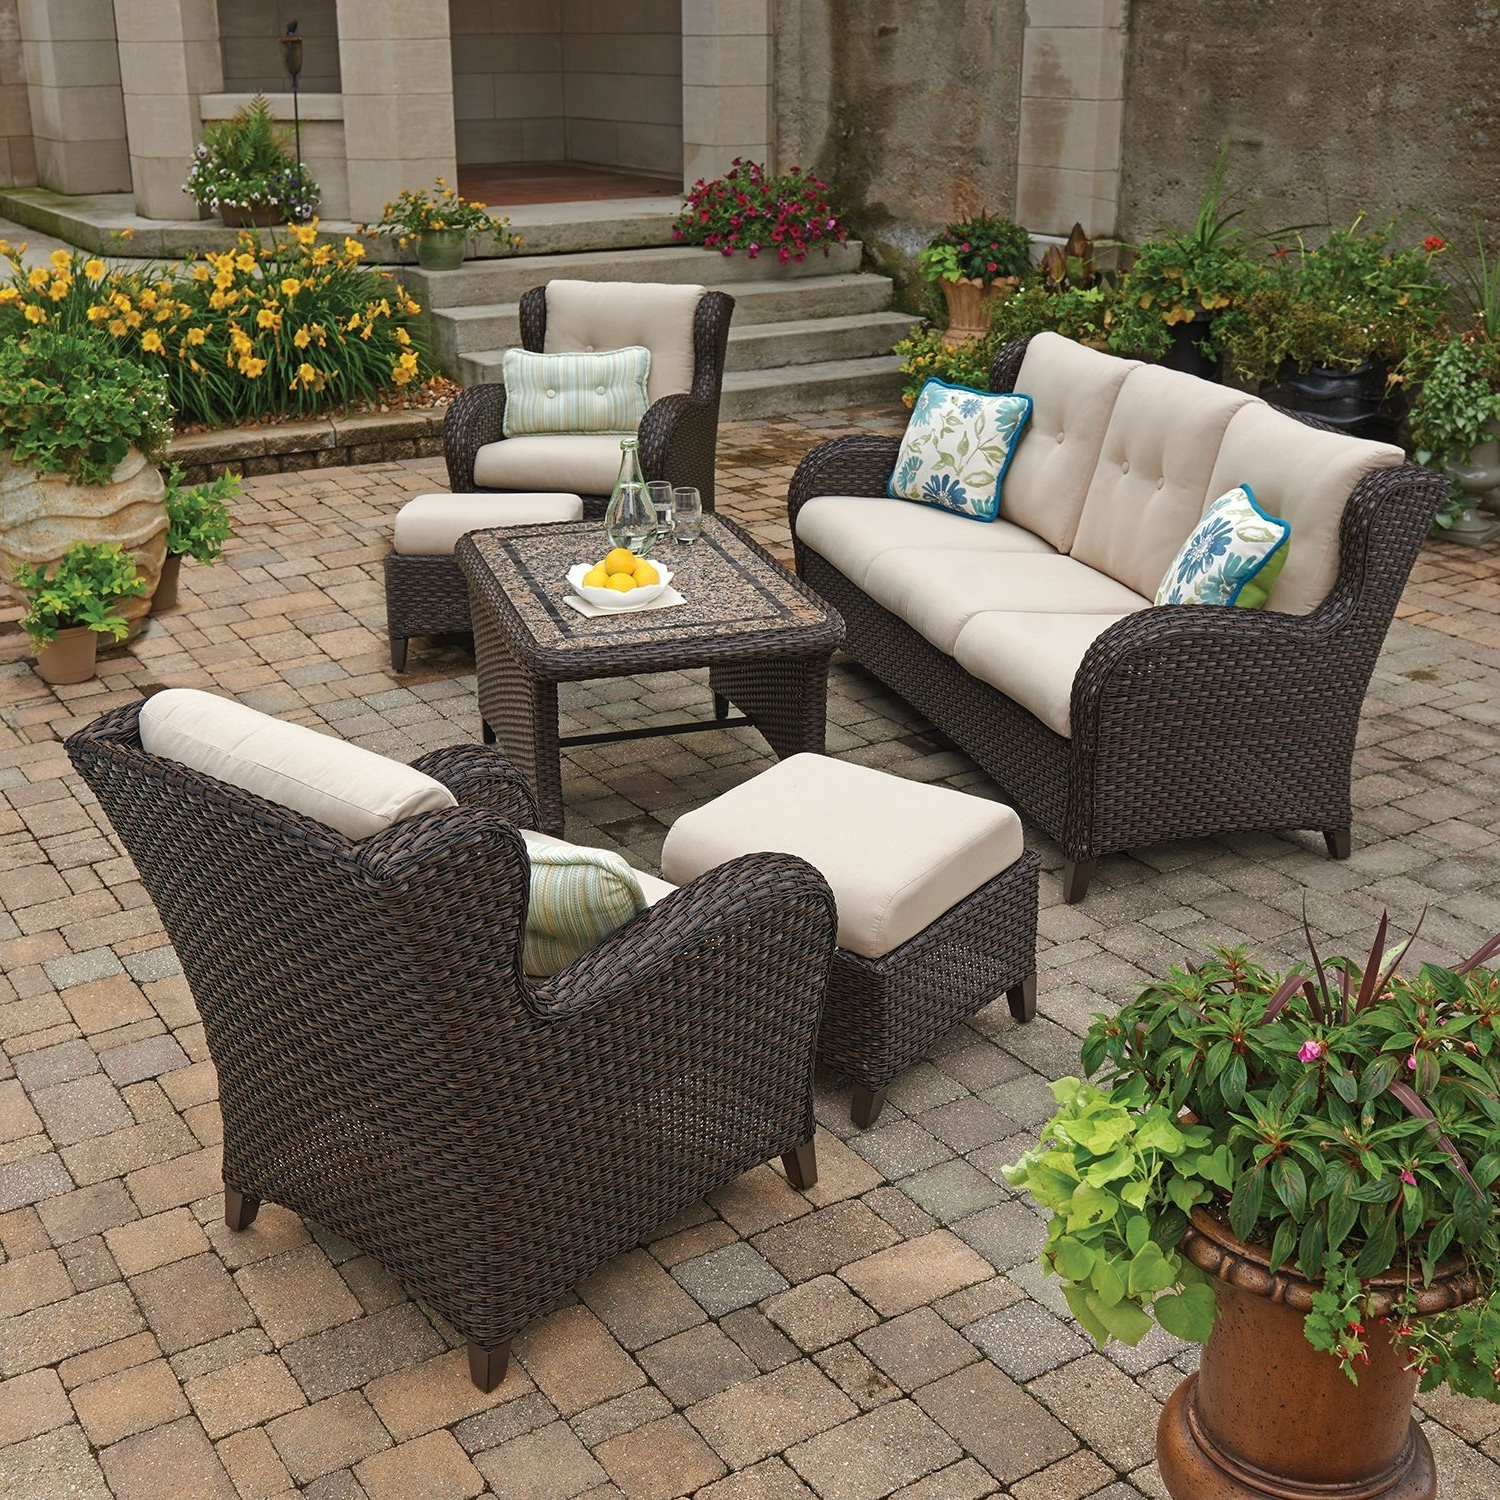 2019 Patio Conversation Sets At Sam's Club Inside Member's Mark Heritage 6 Piece Deep Seating Set With Premium (View 3 of 20)